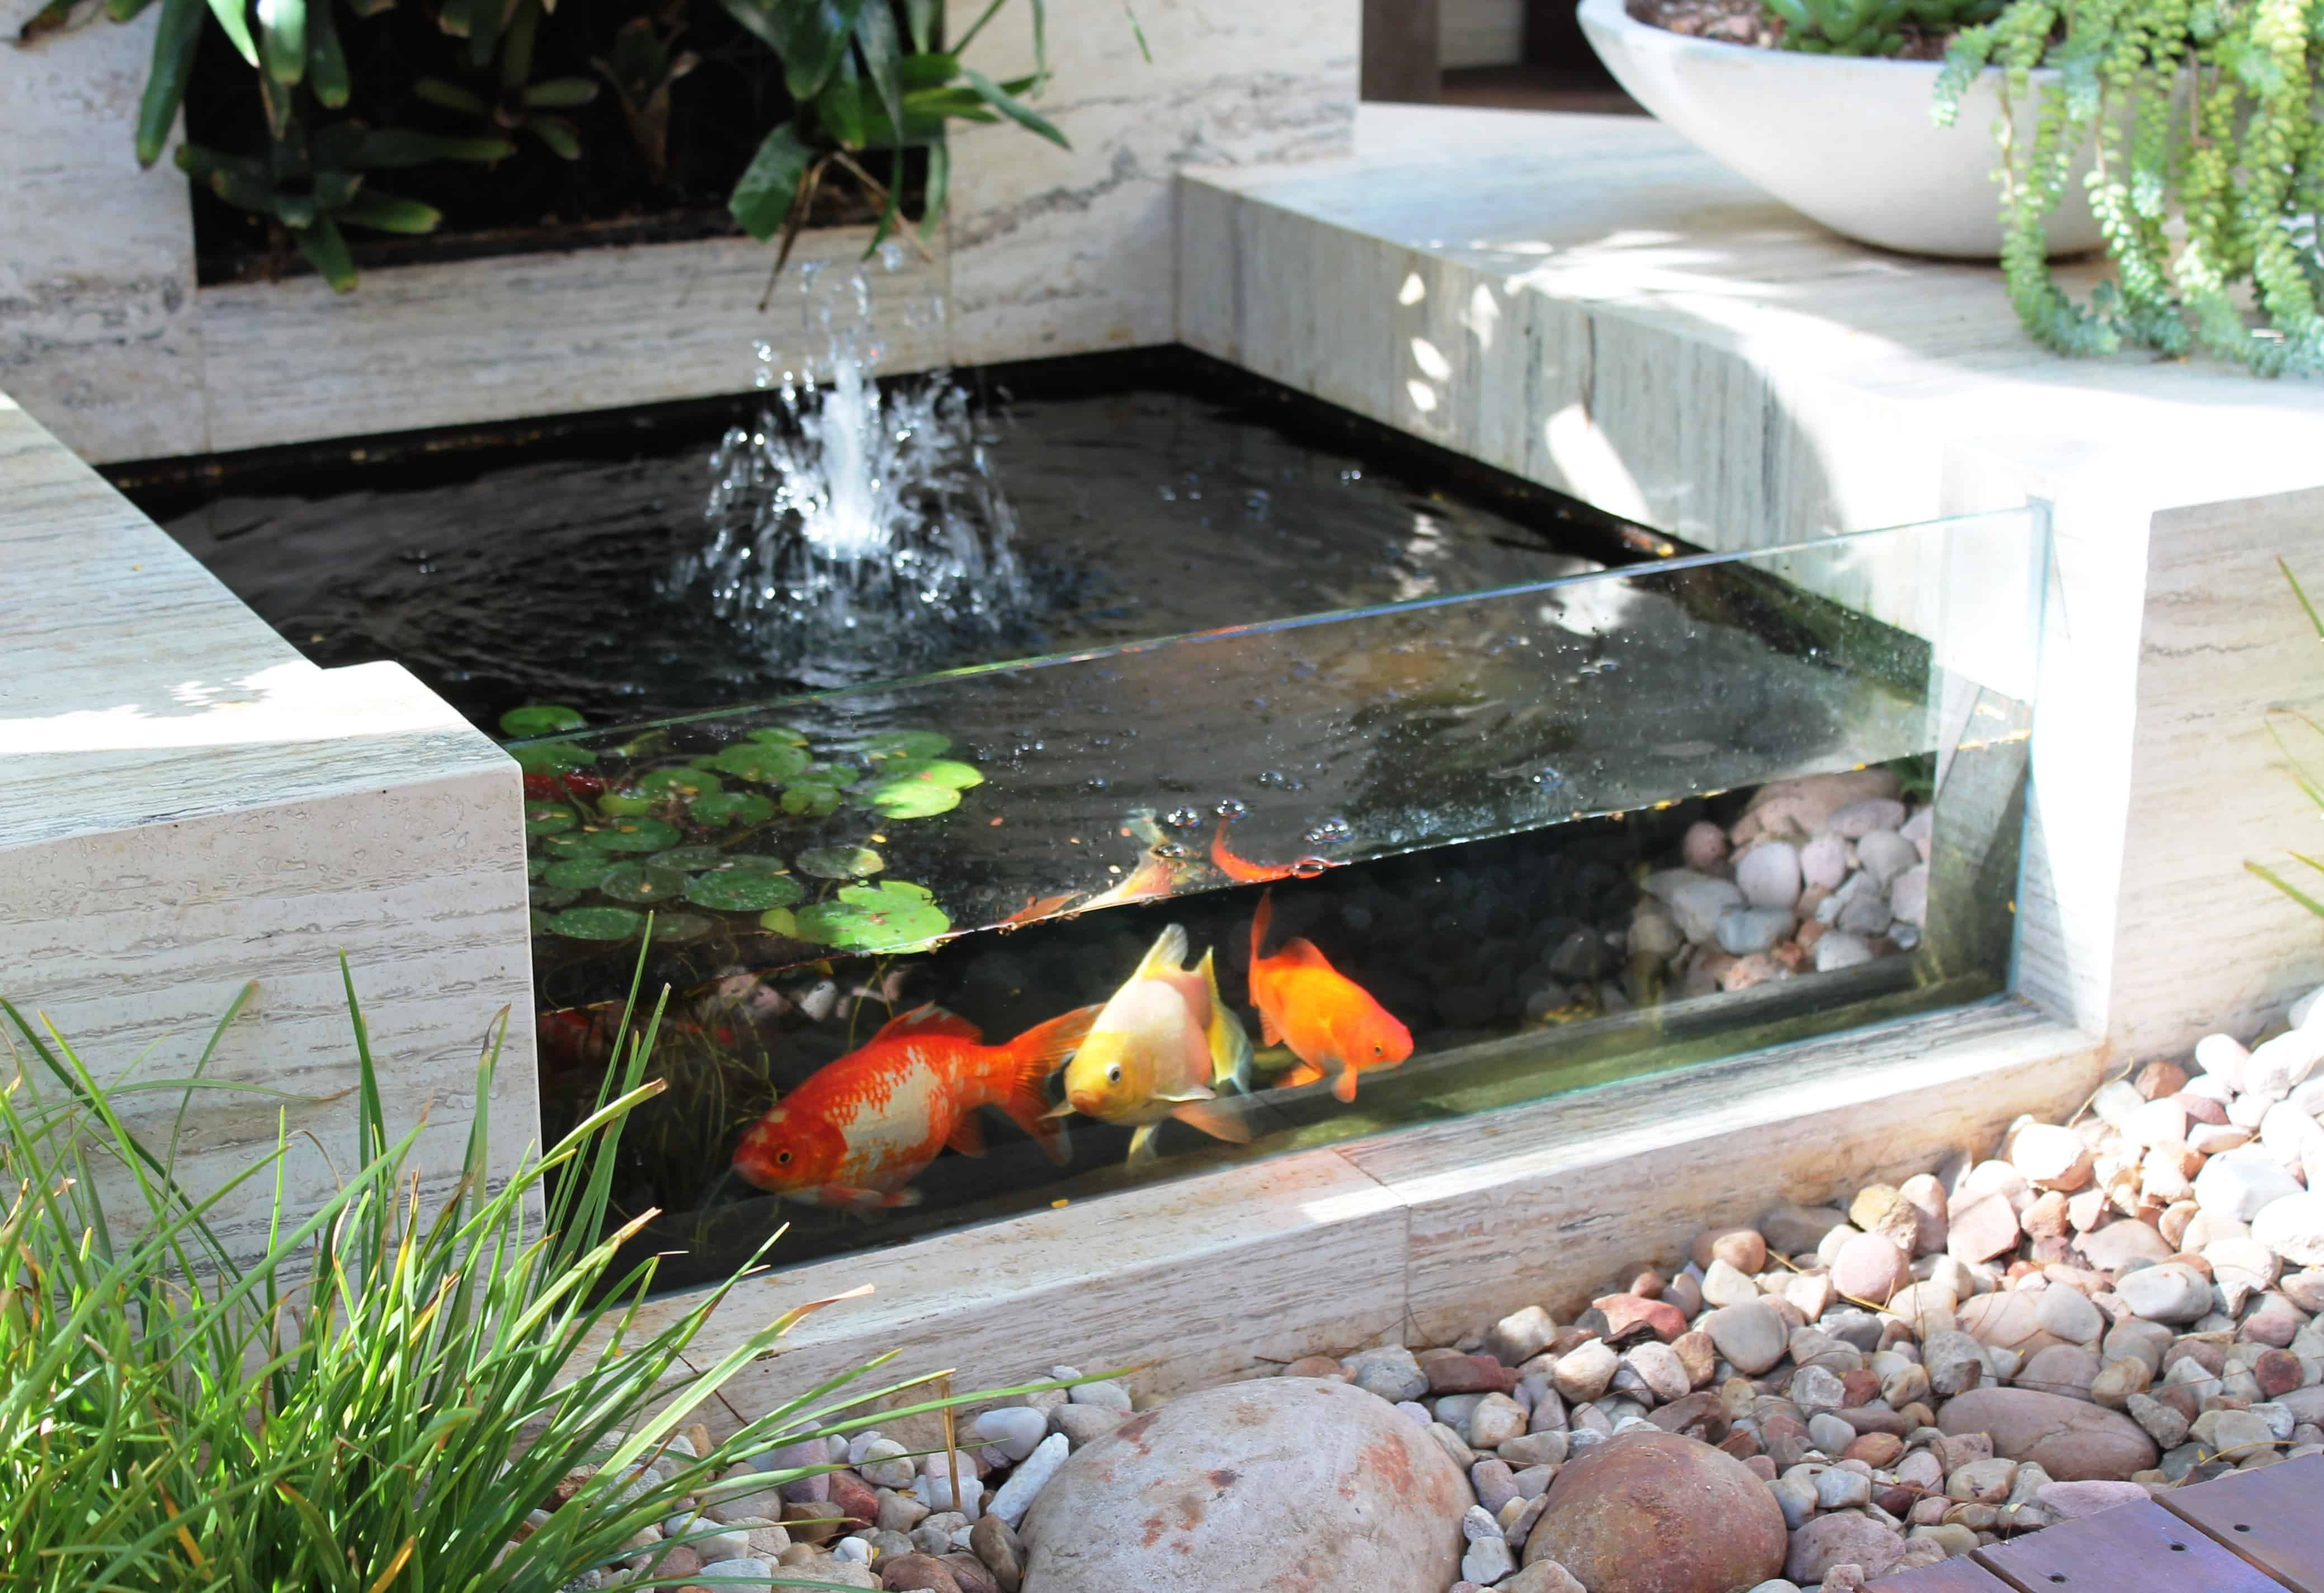 35 Sublime Koi Pond Designs and Water Garden Ideas for ... on Backyard Koi Pond Designs id=83515